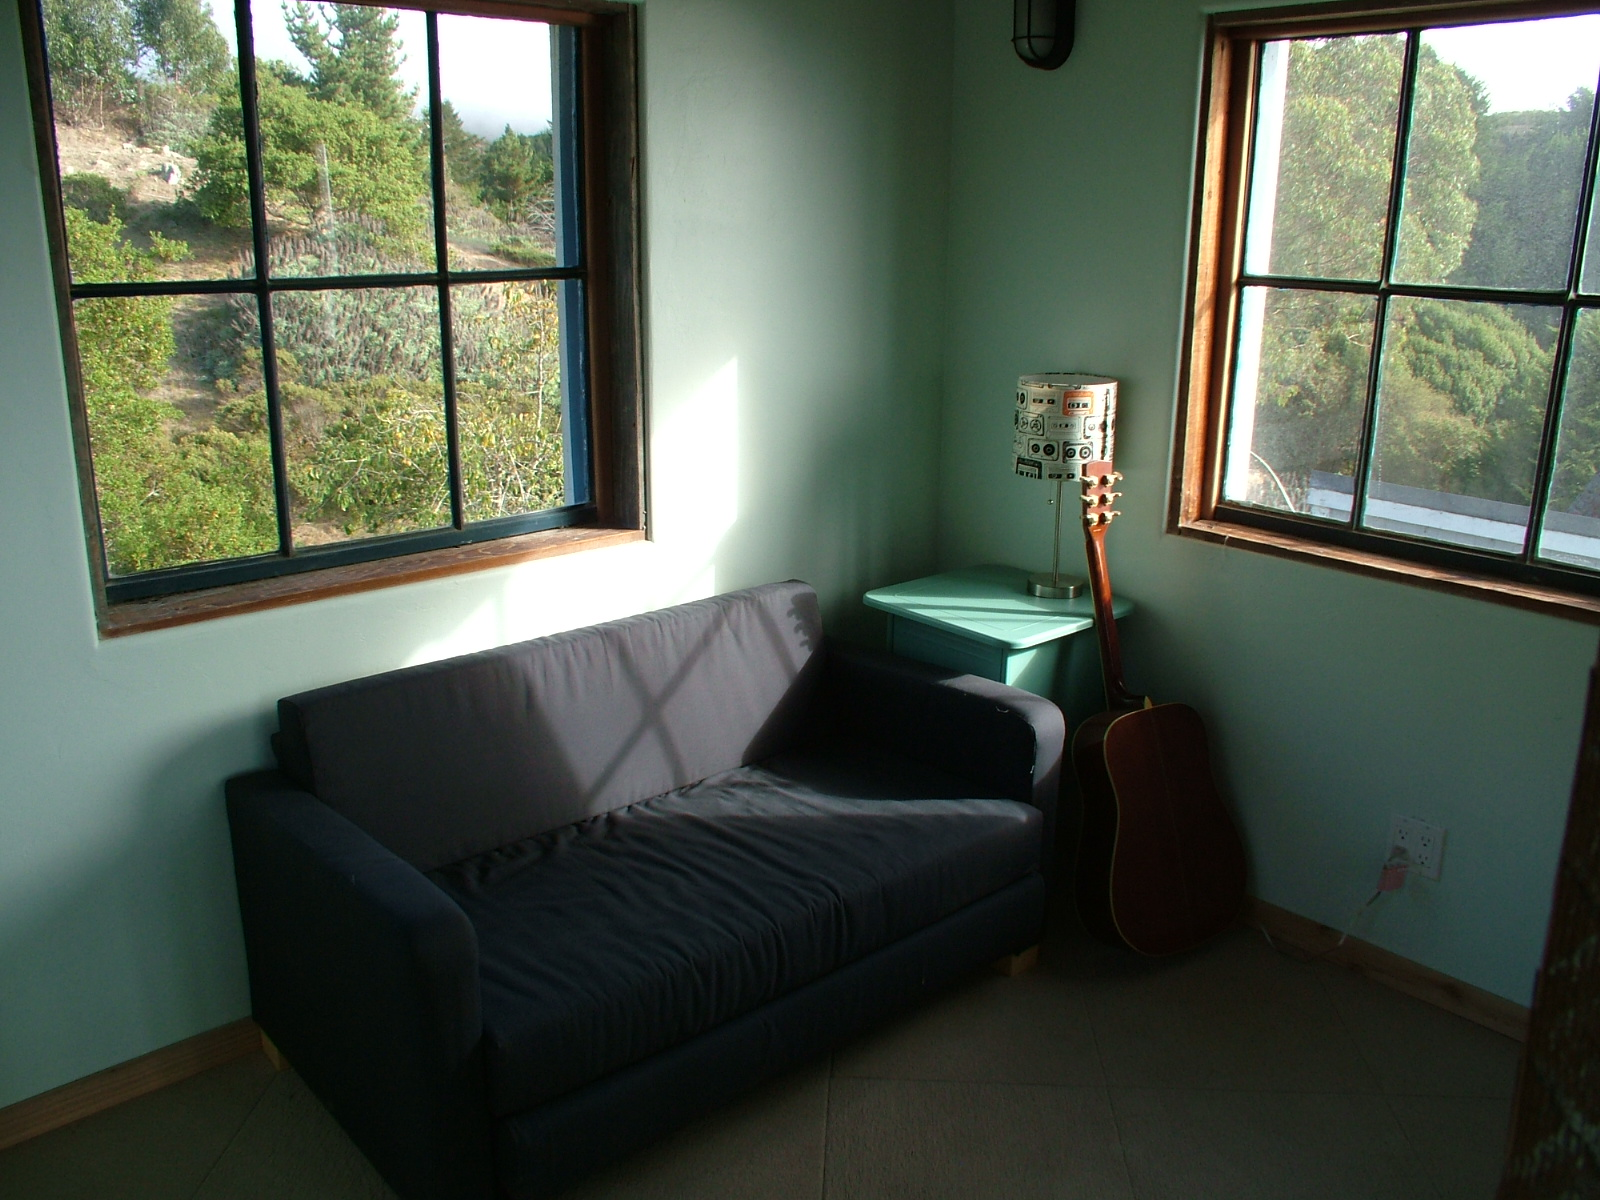 One of the many tucked away spaces to sit, relax and create or just read.